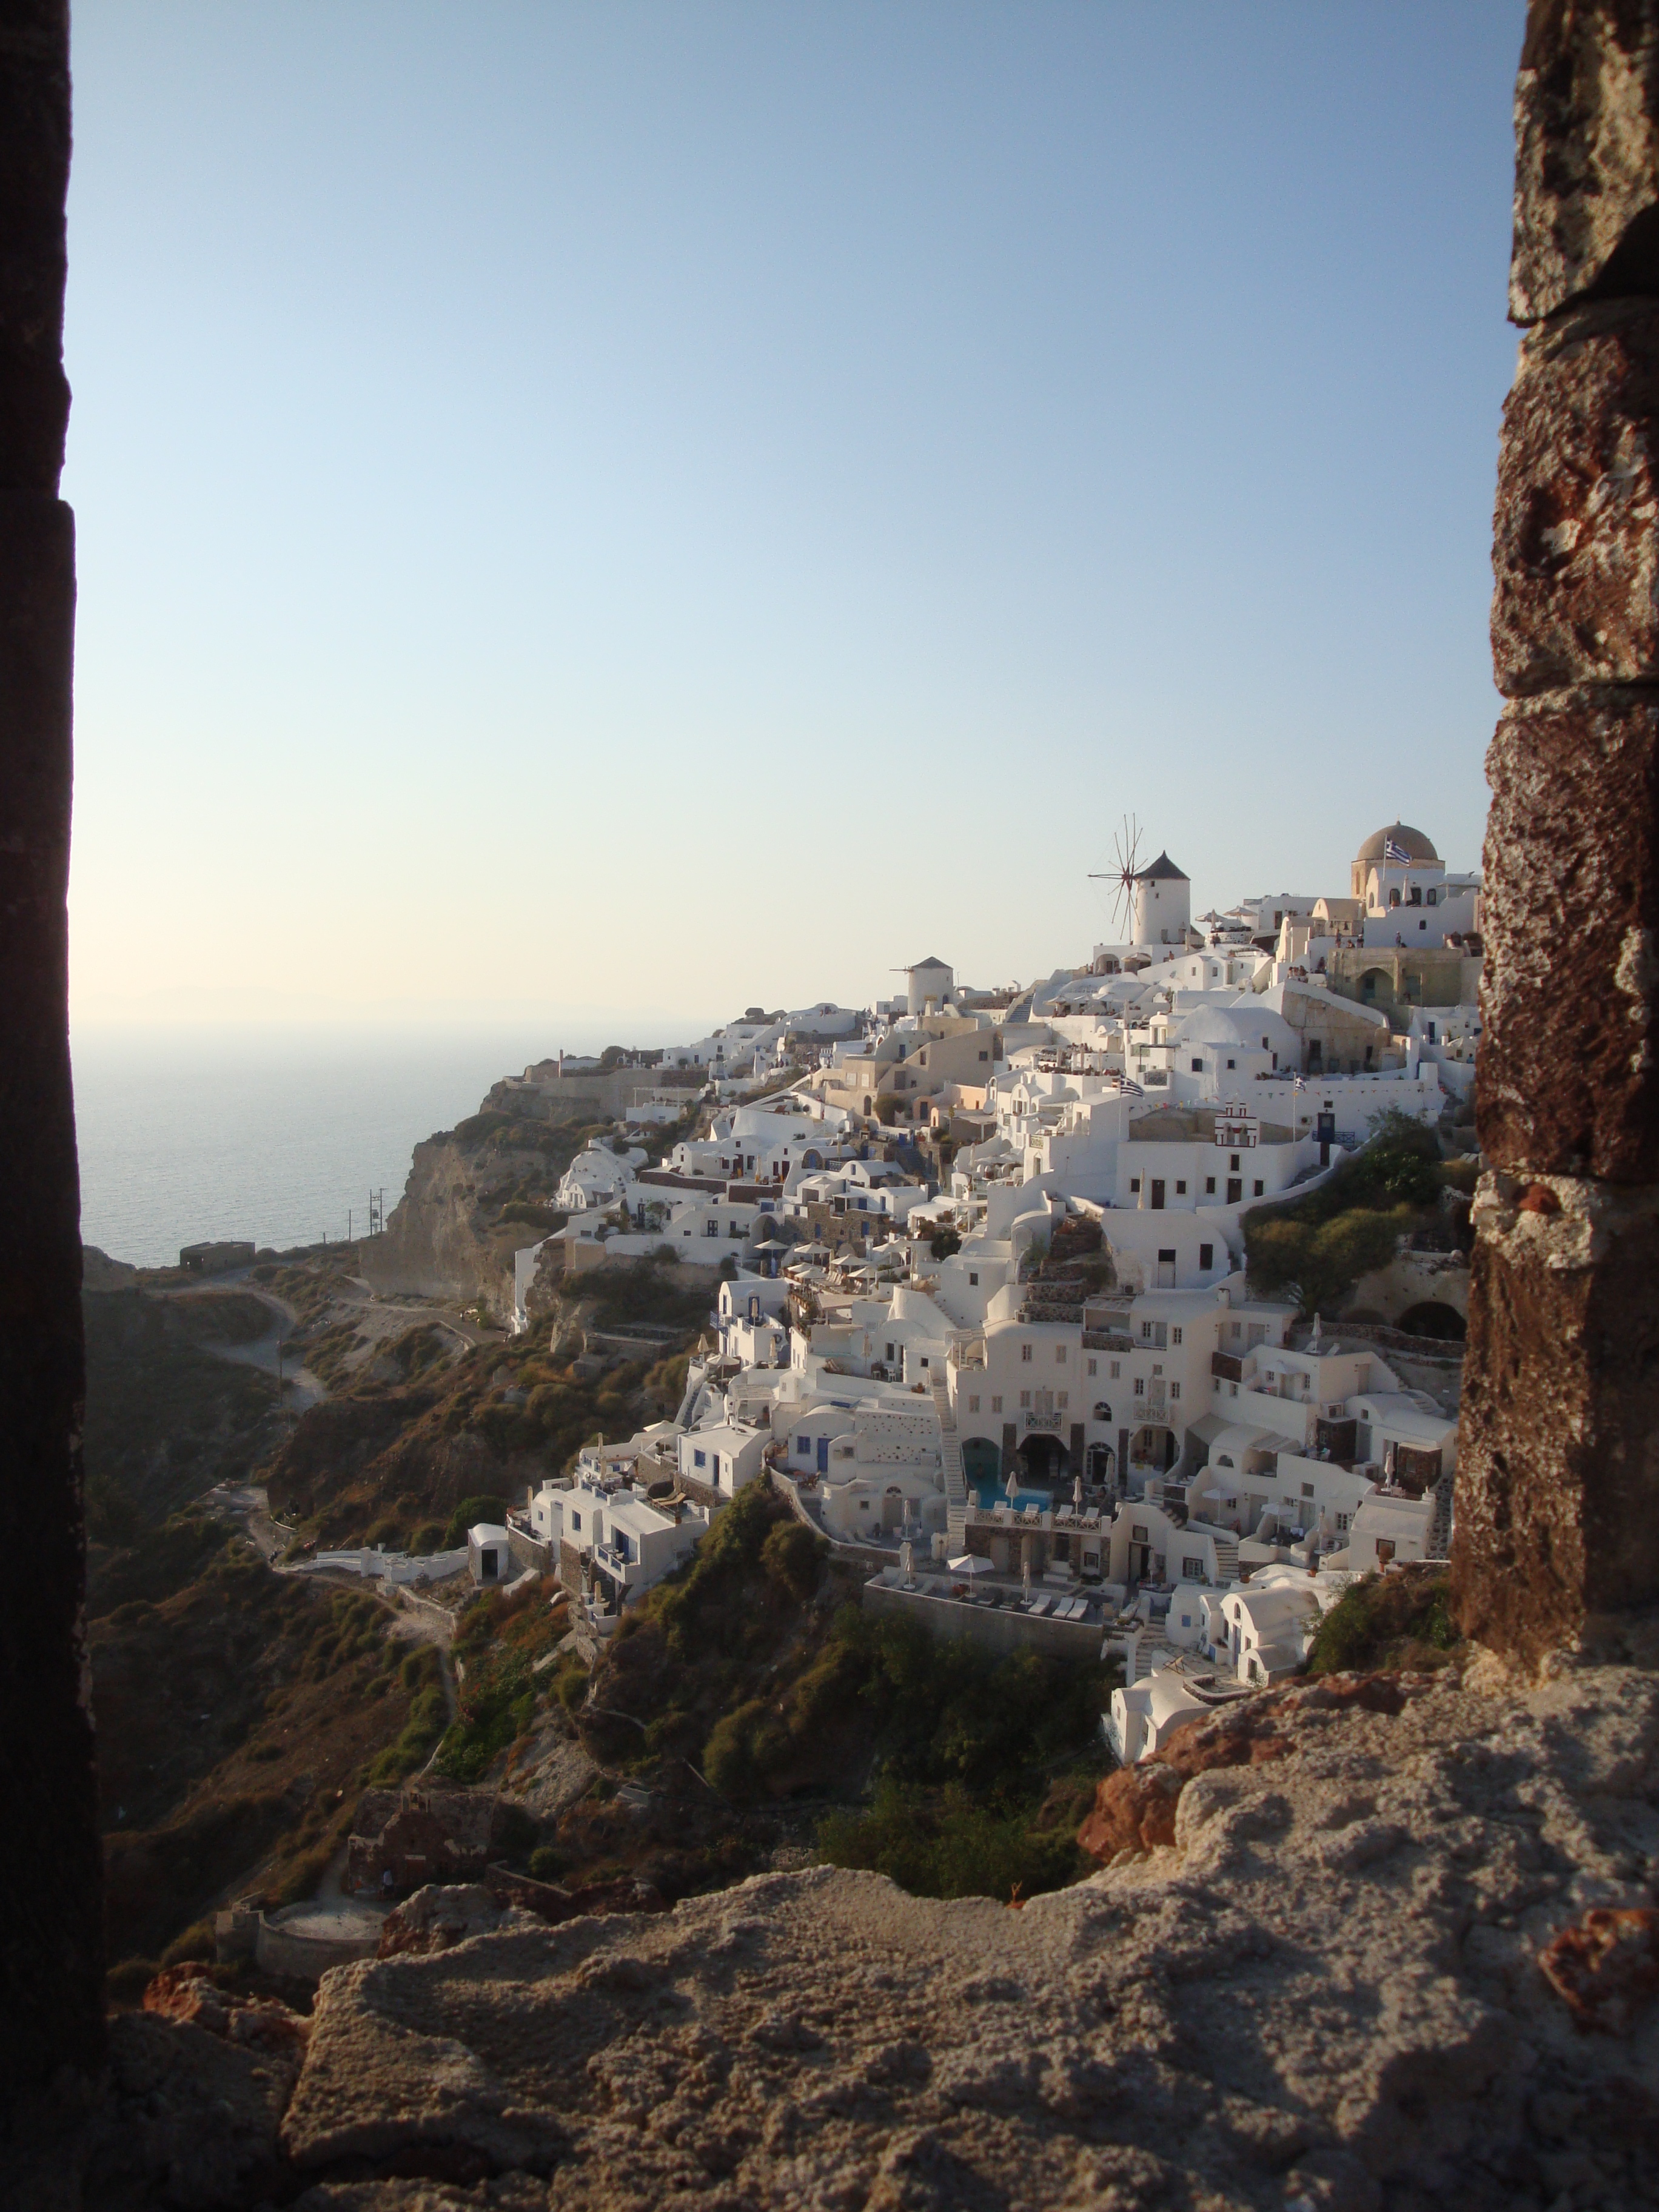 23. View of Oia from the ruins of the castle - Santorini